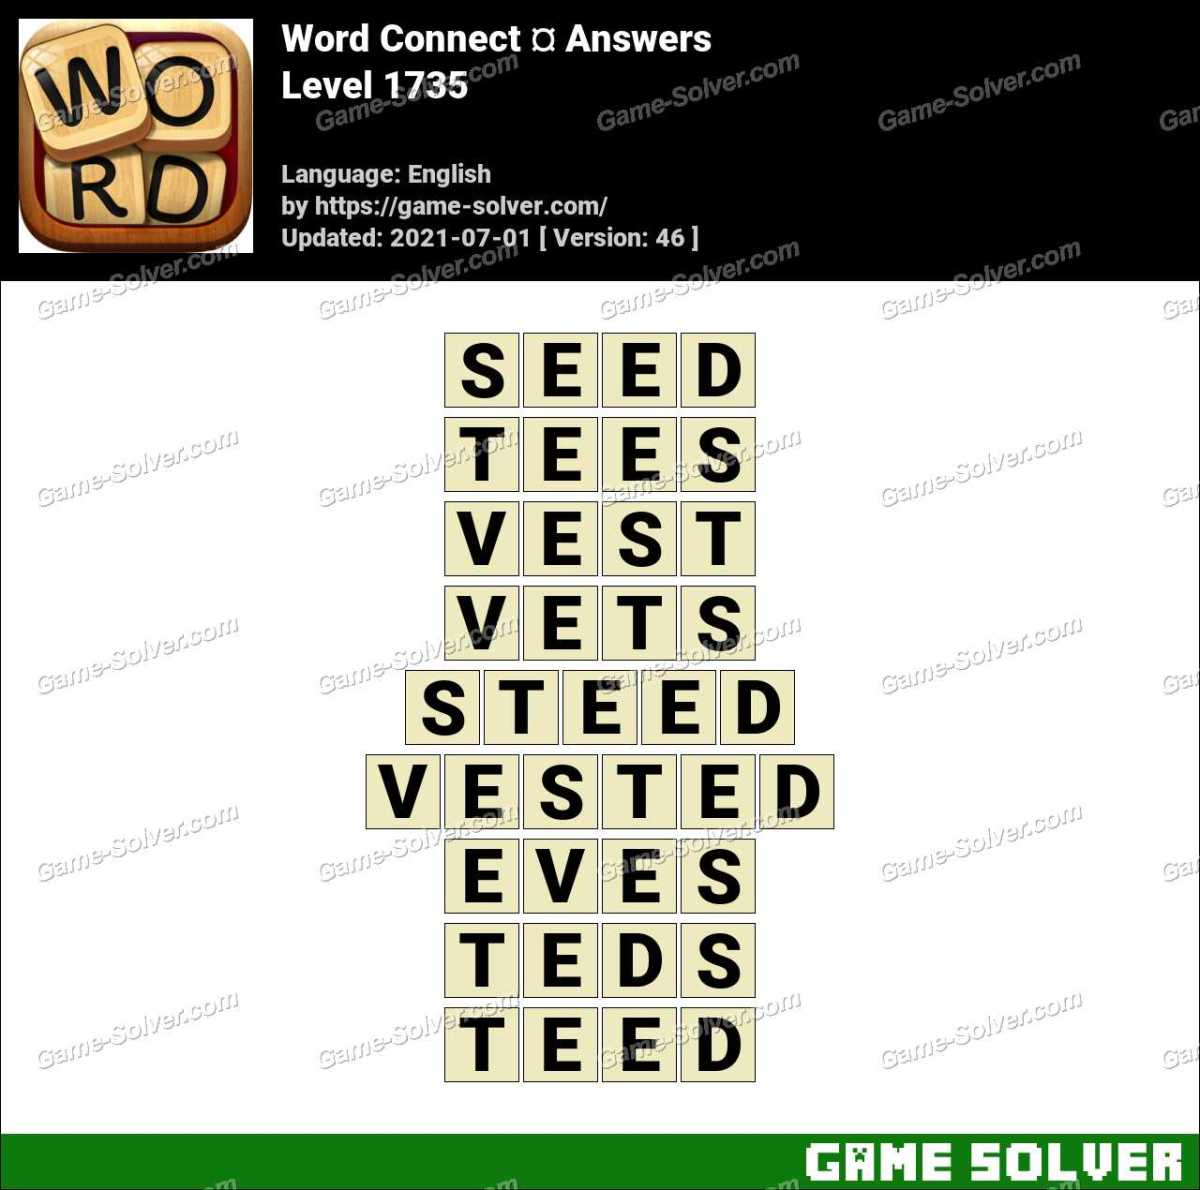 Word Connect Level 1735 Answers